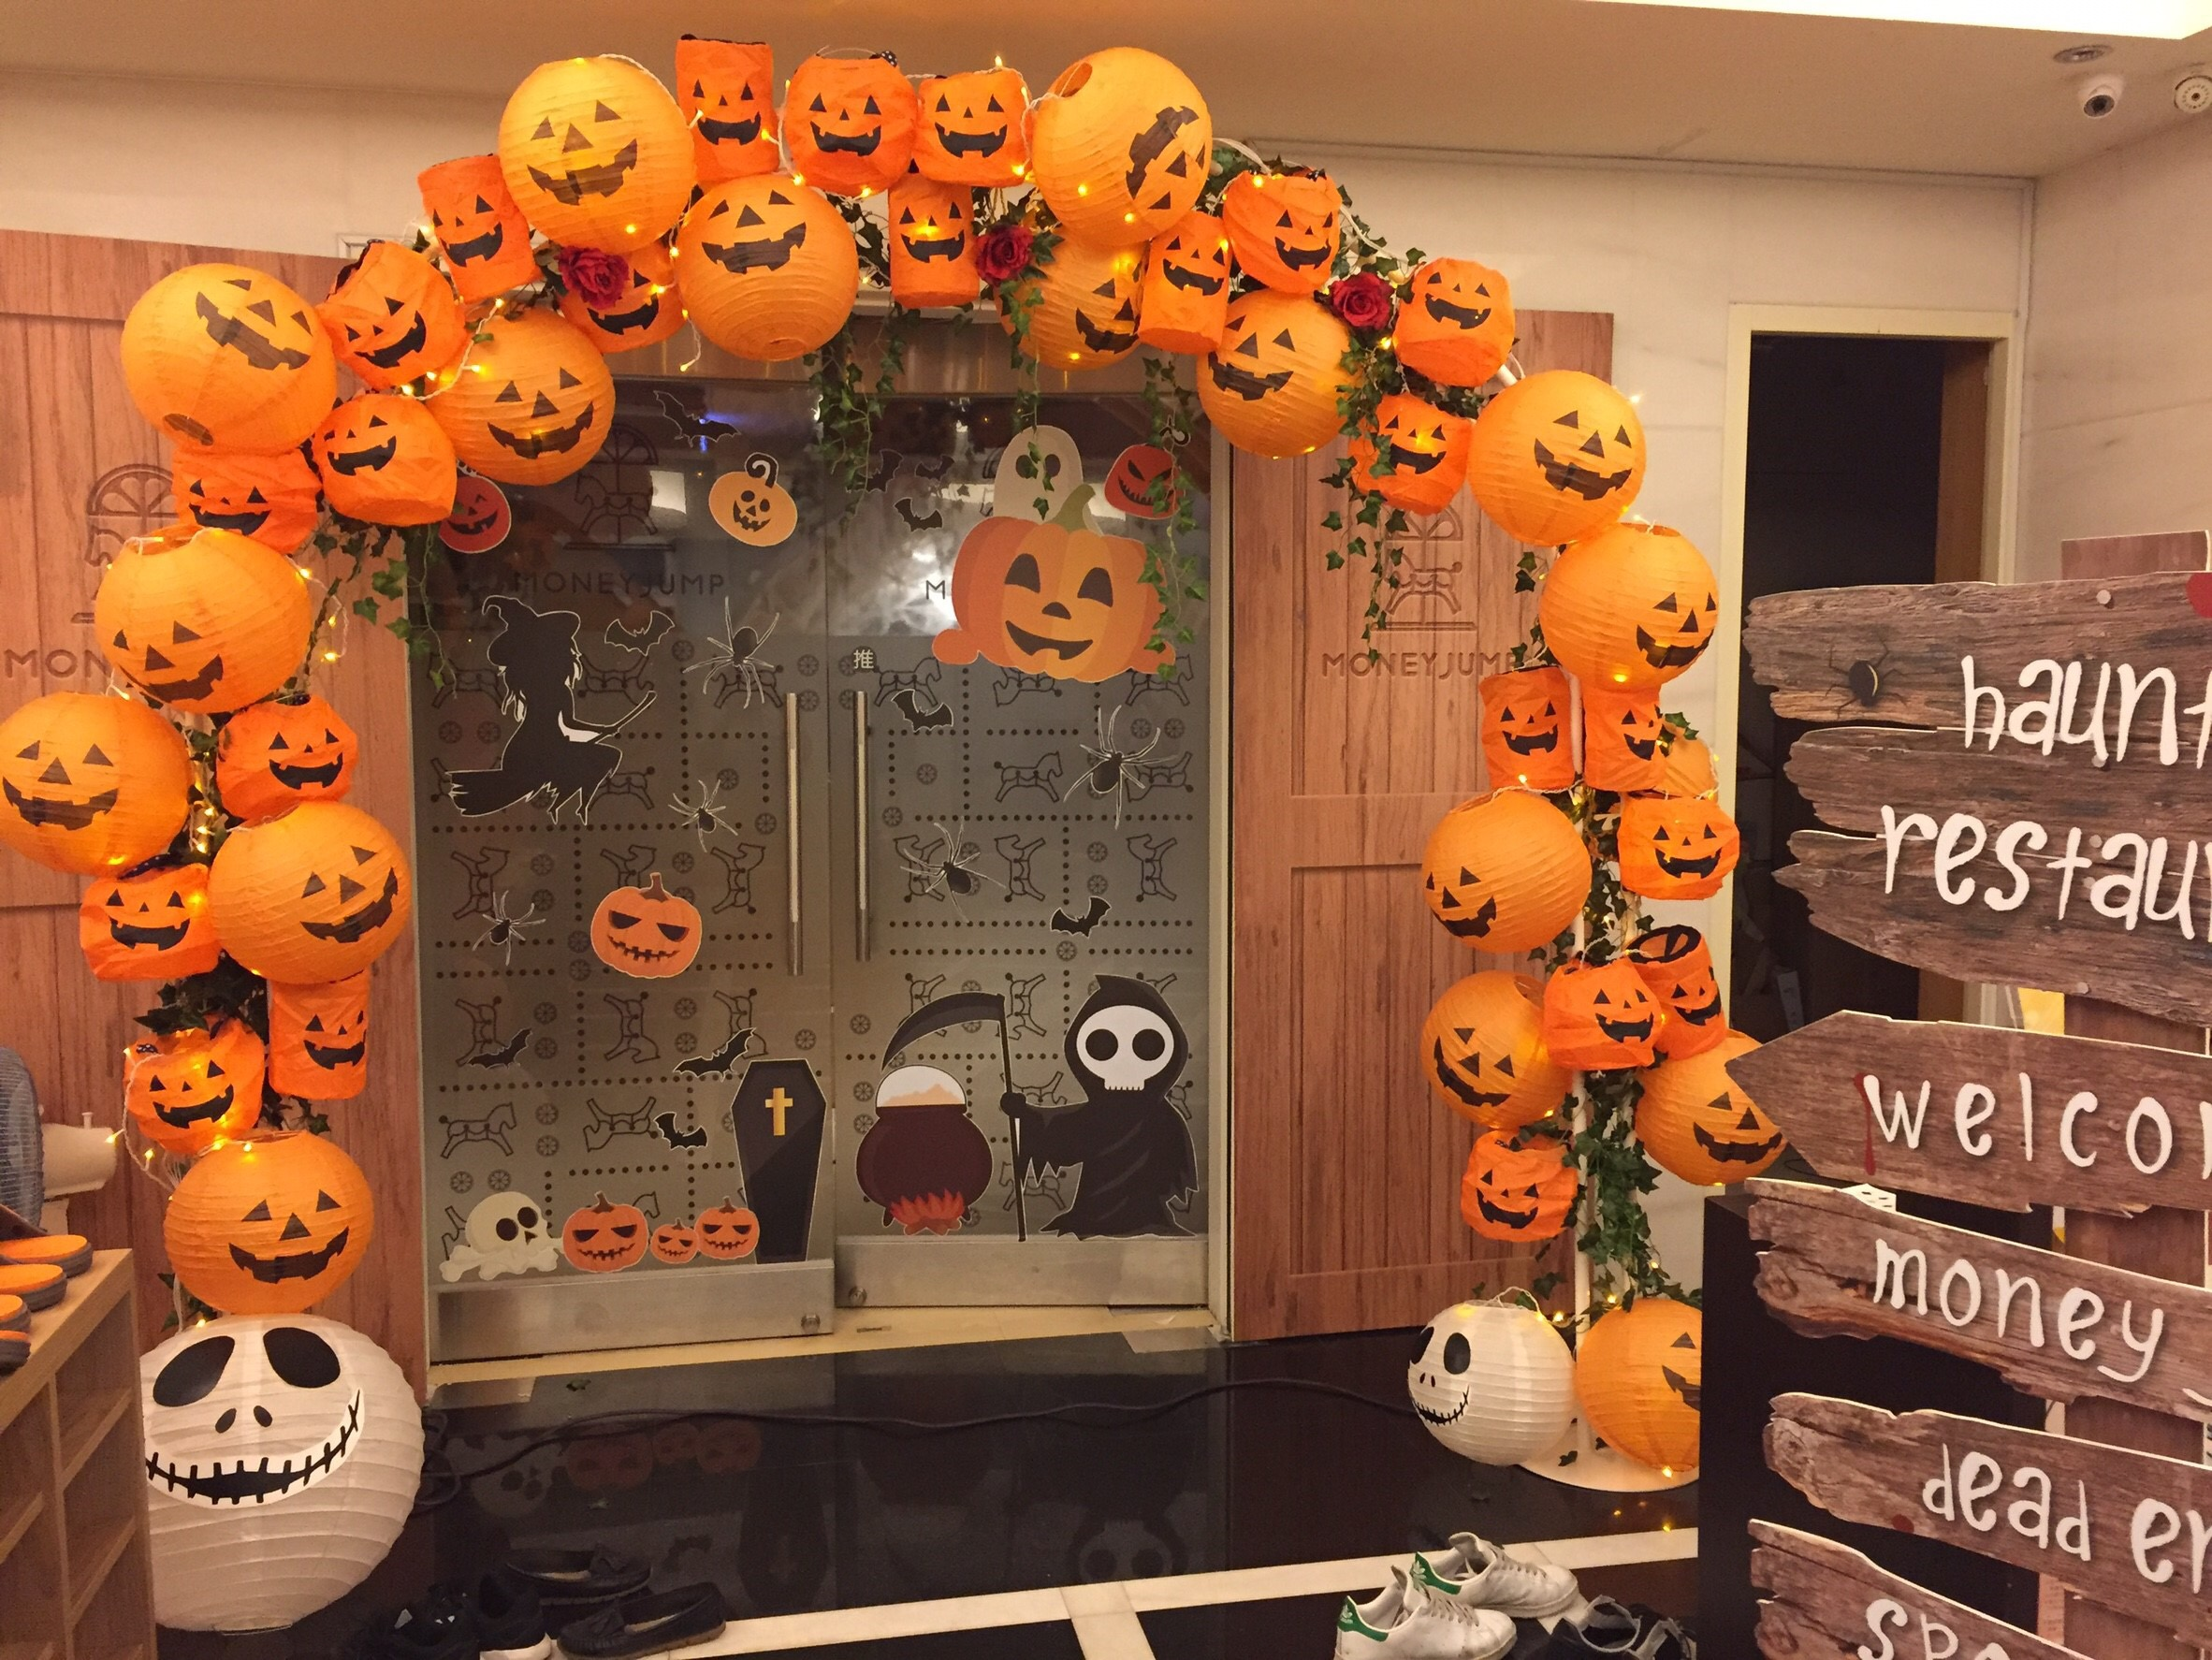 10 DIY Ideas / Tips for Your Halloween Party in Singapore